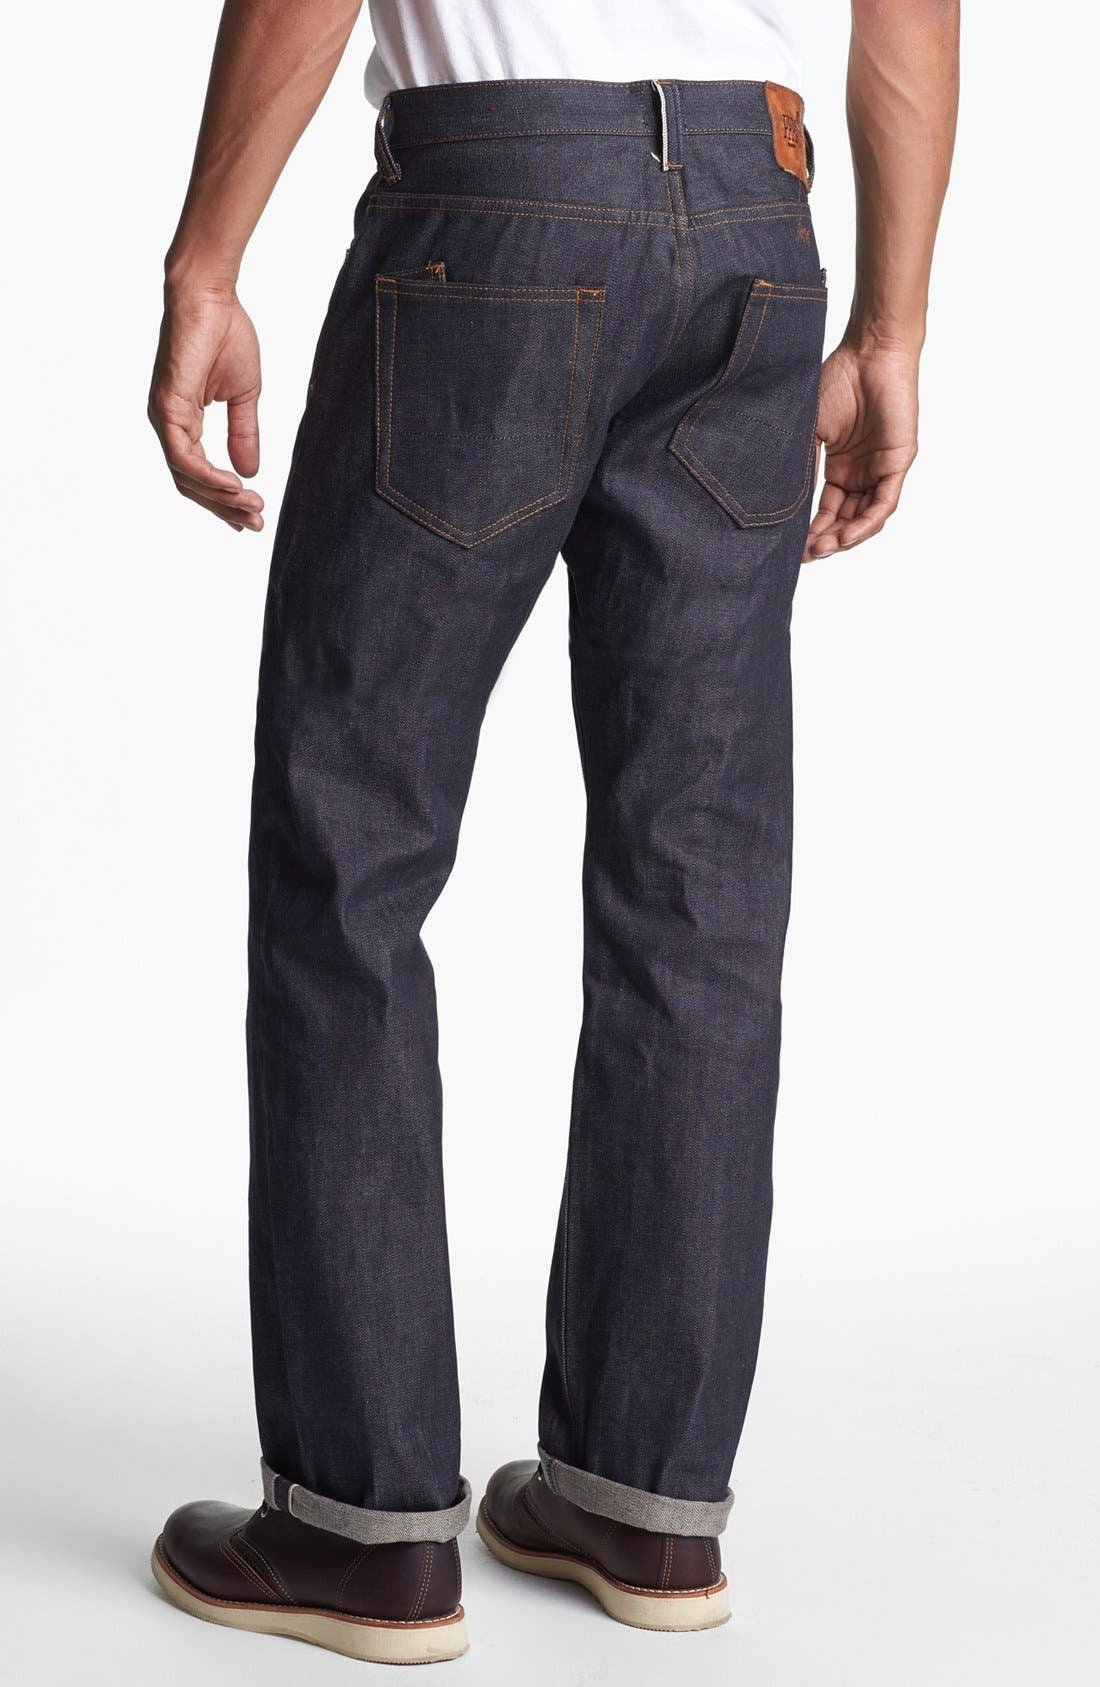 'Barracuda' Straight Leg Selvedge Jeans,                             Alternate thumbnail 5, color,                             413